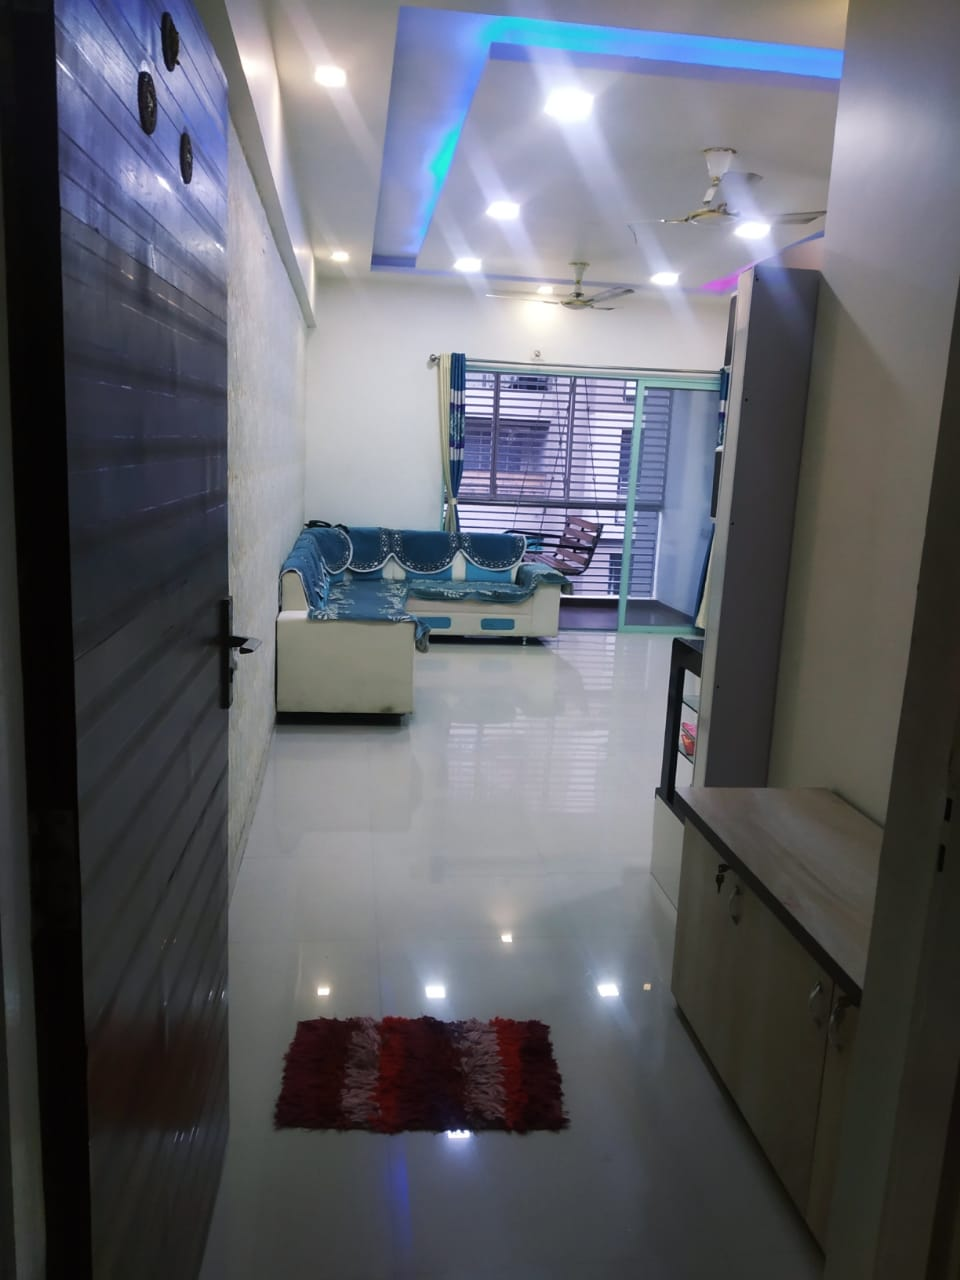 3BHK-1783sqft-flat-for-rent-in-Satellite-Ahmedabad-TP12-2701671